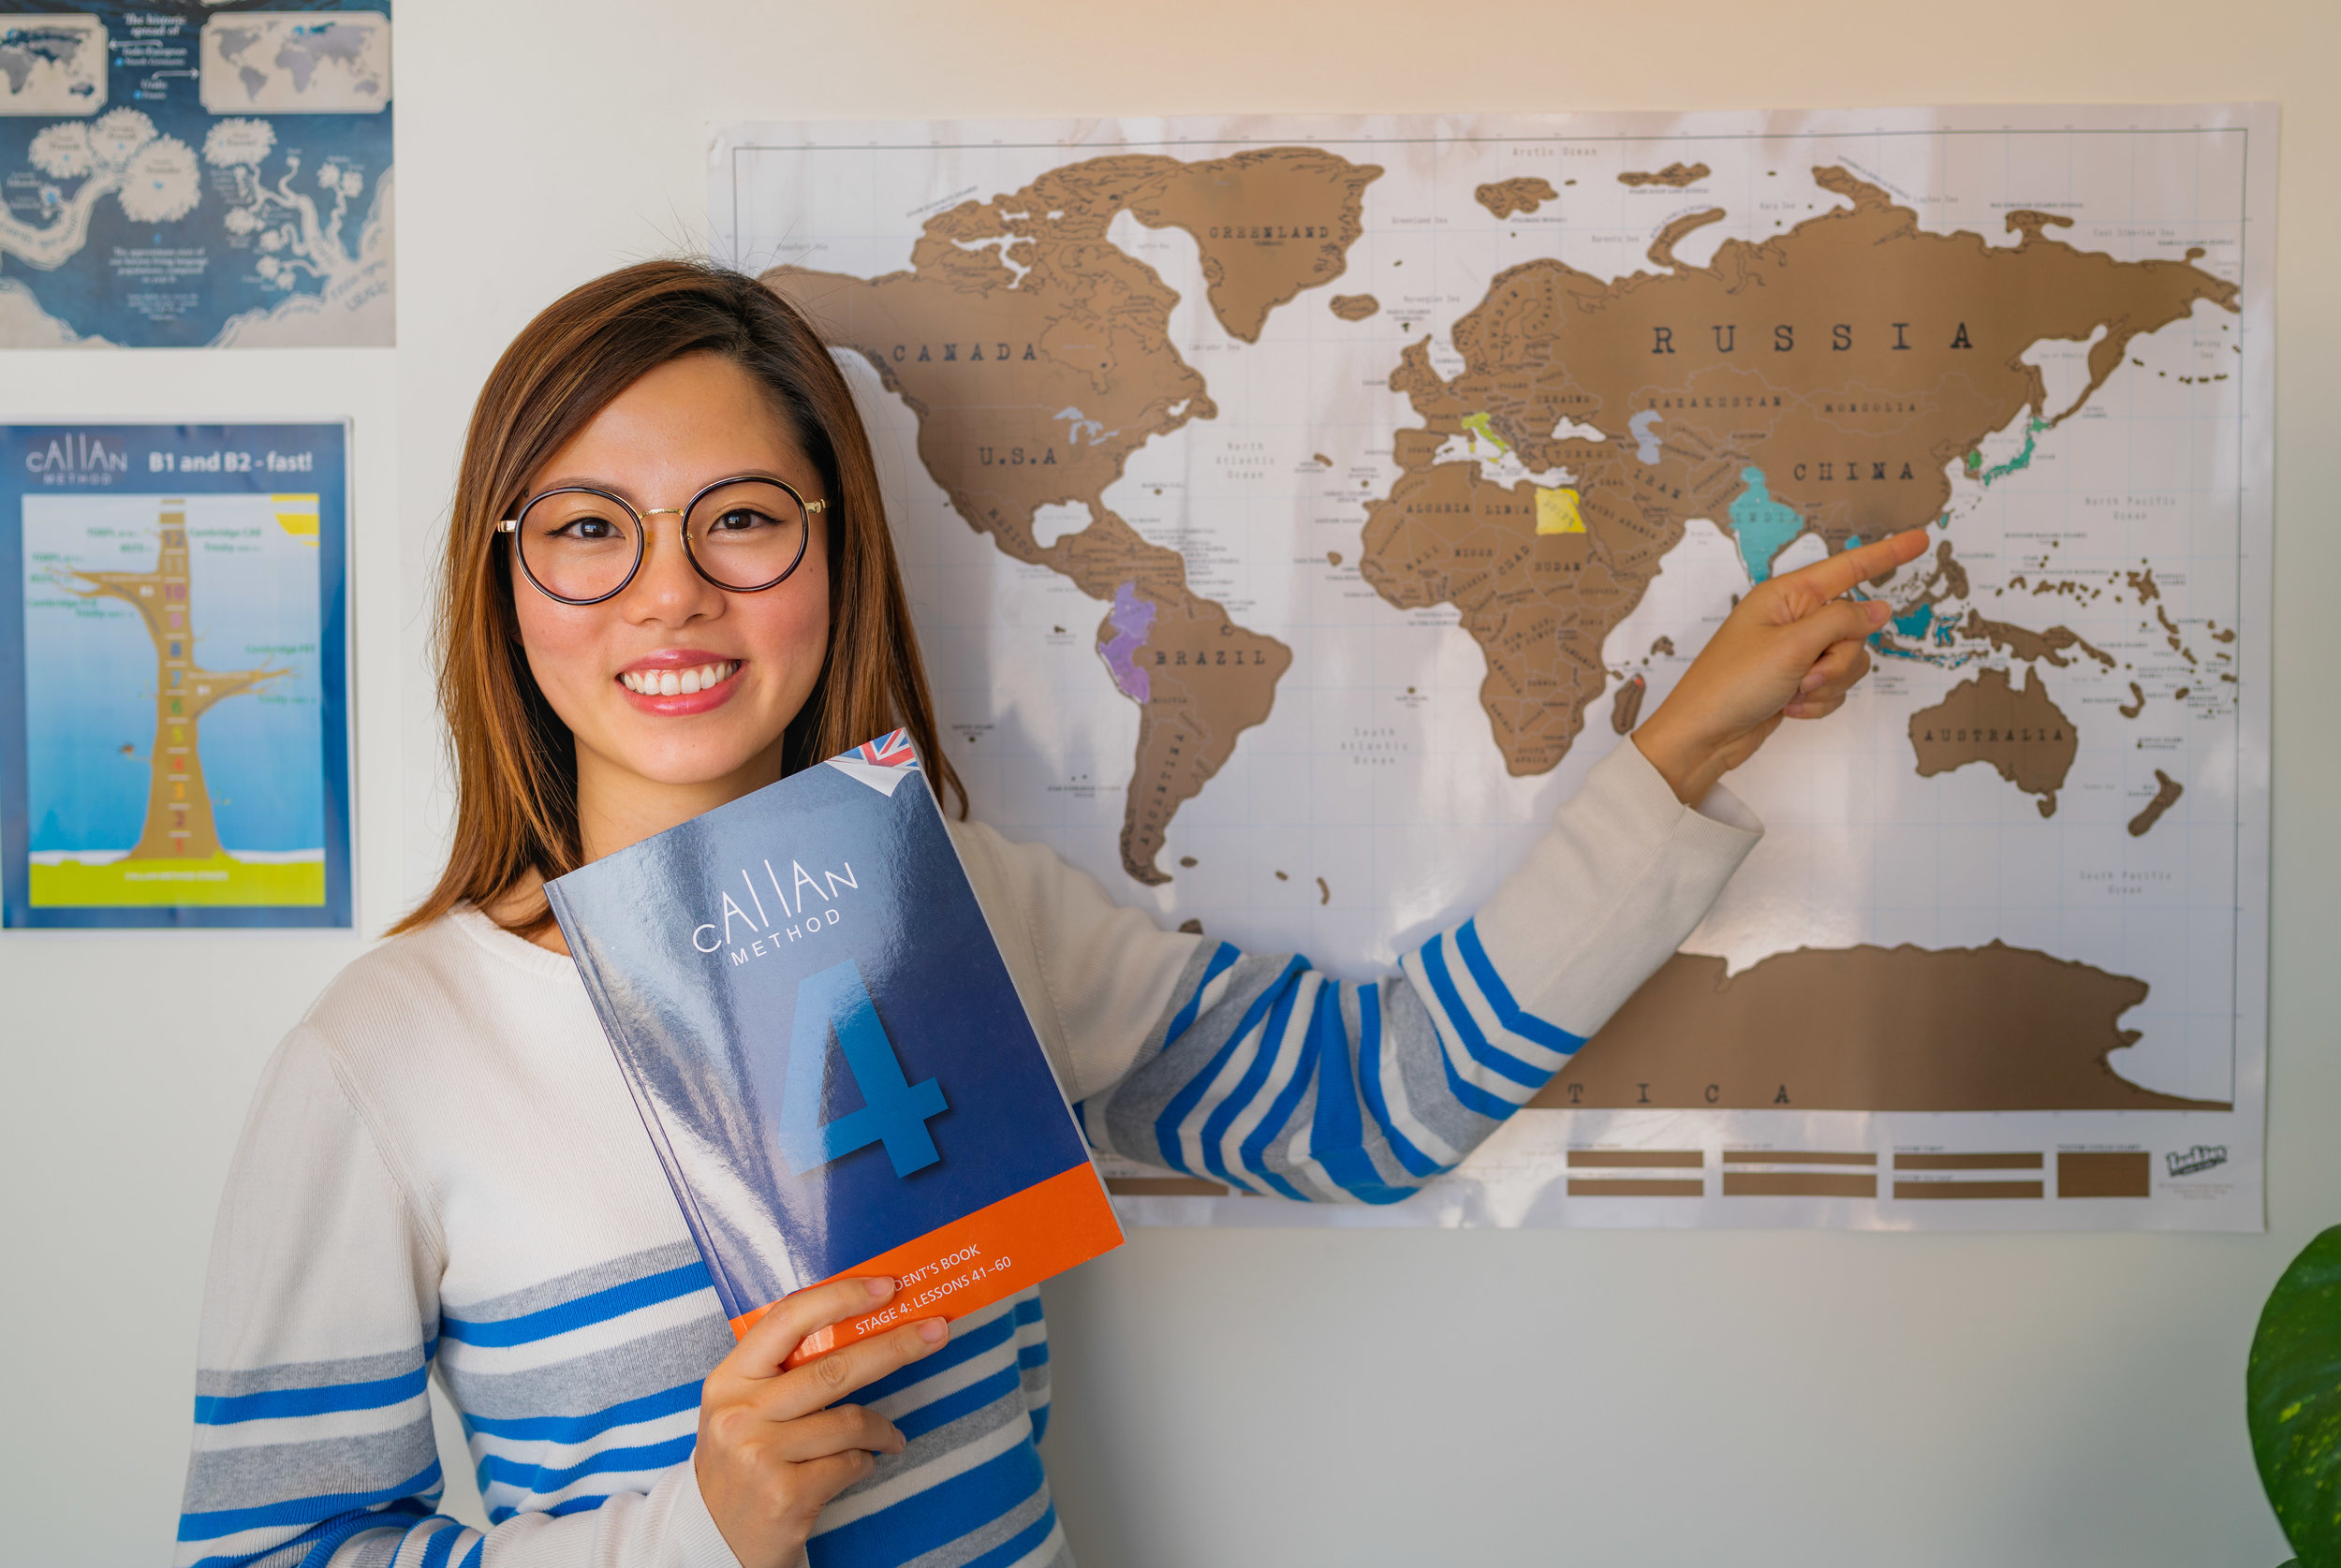 At Ace Language Academy we teach English using the Callan method, where our teachers correct your mistakes as soon as you make them. Learning is fast, because the classes are organised, efficient and fun, and you are constantly surrounded by native English speakers. -